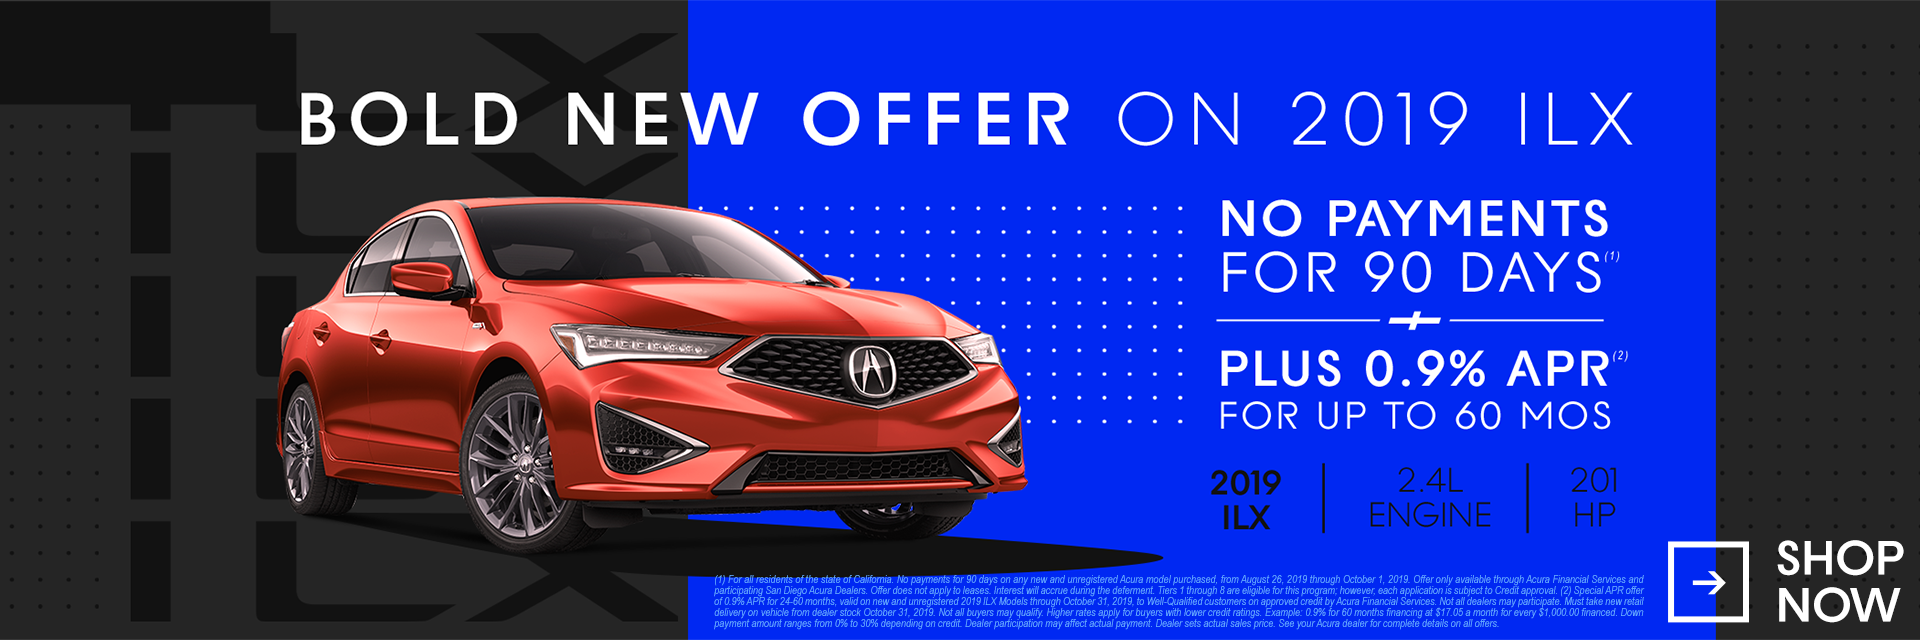 2019 ILX No payments for 90 days